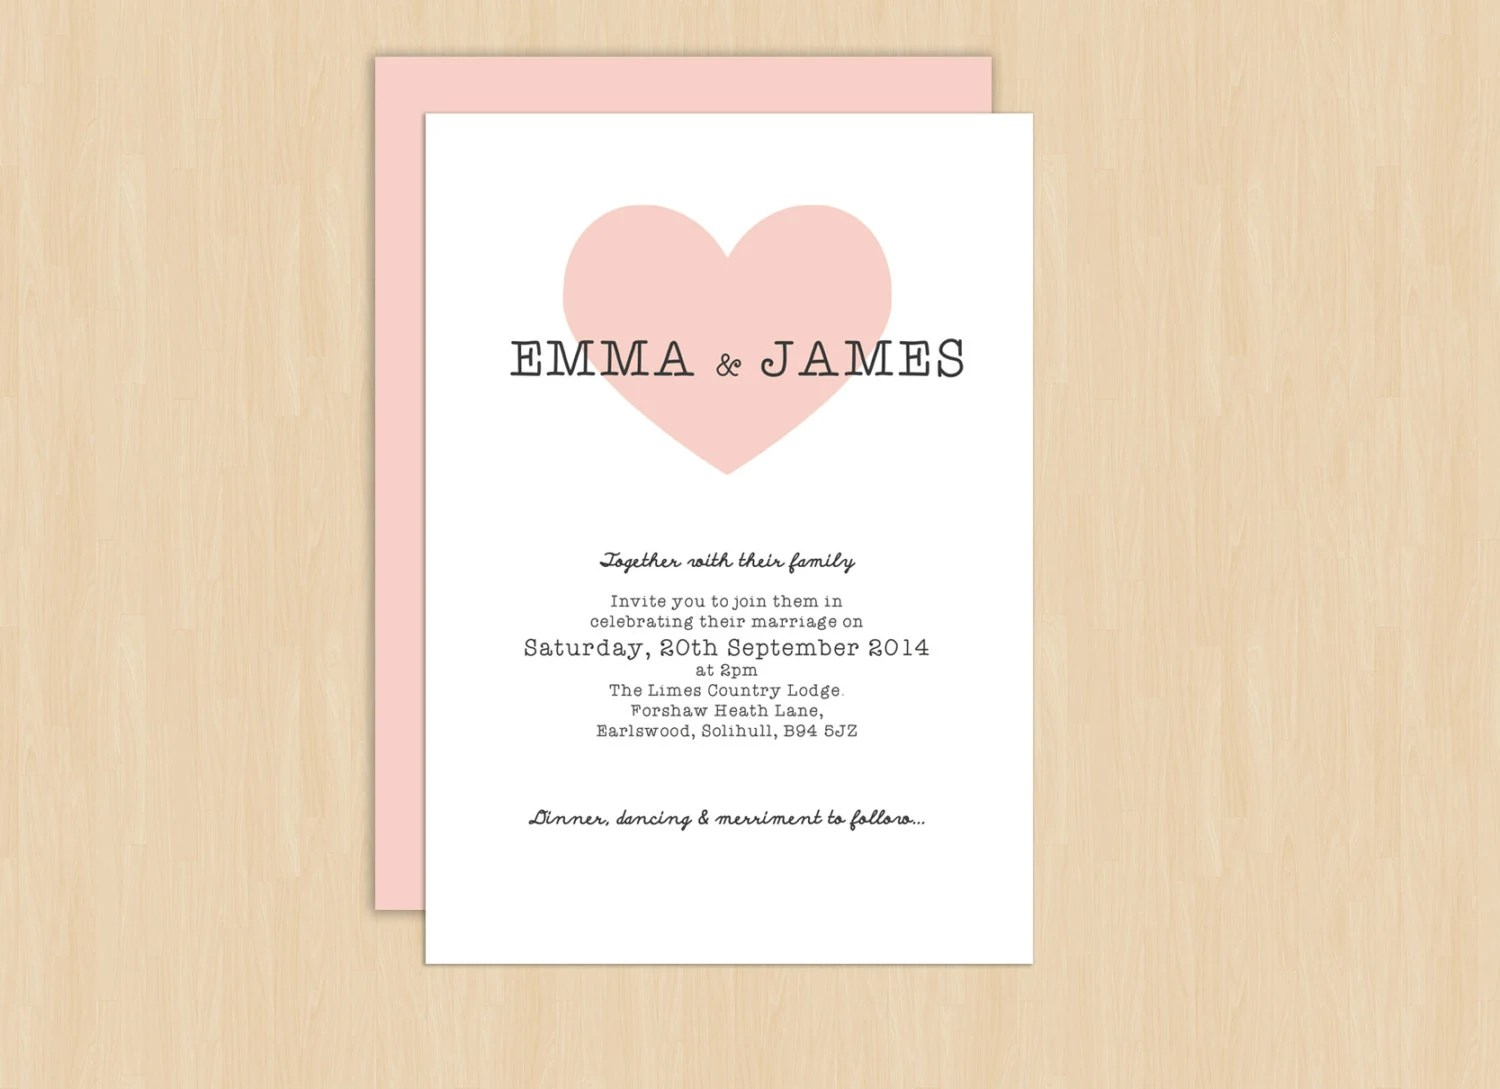 Heart Wedding Invitations Uk: Love Heart Wedding Invitation, Printable Wedding